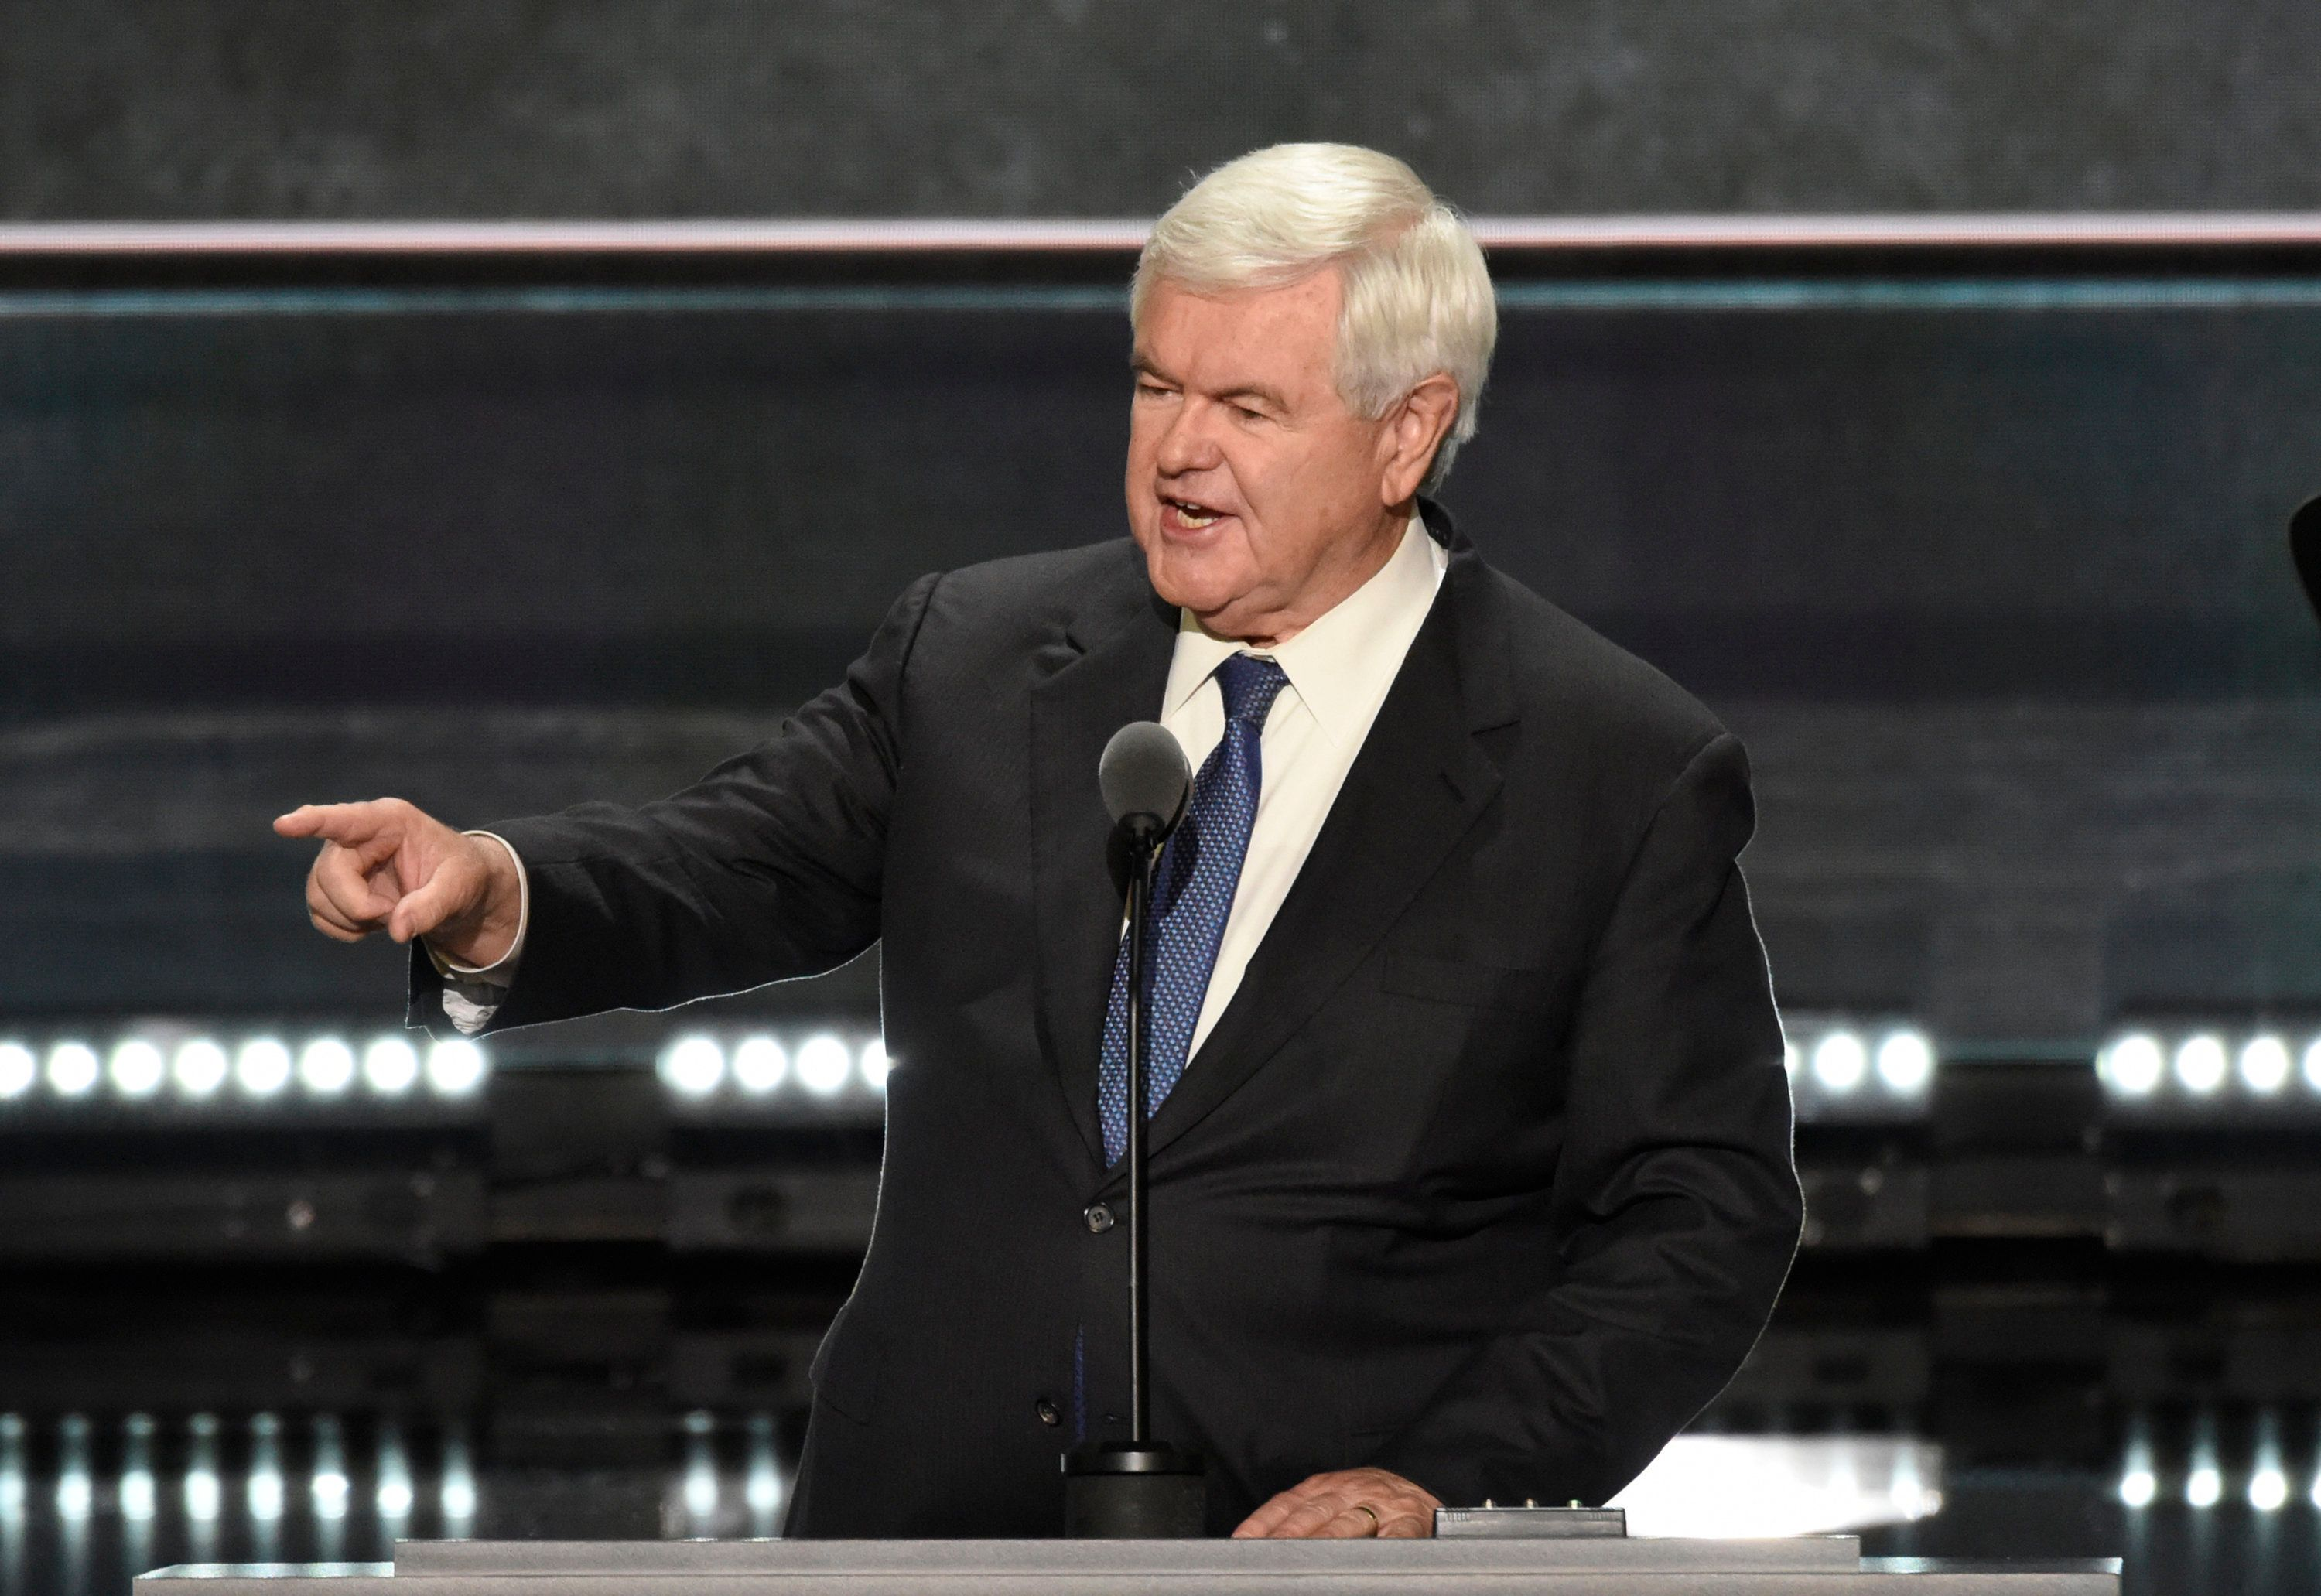 ABC NEWS - 7/20/16 - Coverage of the 2016 Republican National Convention from the Quicken Loans Arena in Cleveland, Ohio, which airs on all ABC News programs and platforms.   (Photo by Ida Mae Astute/ABC via Getty Images)   NEWT GINGRICH